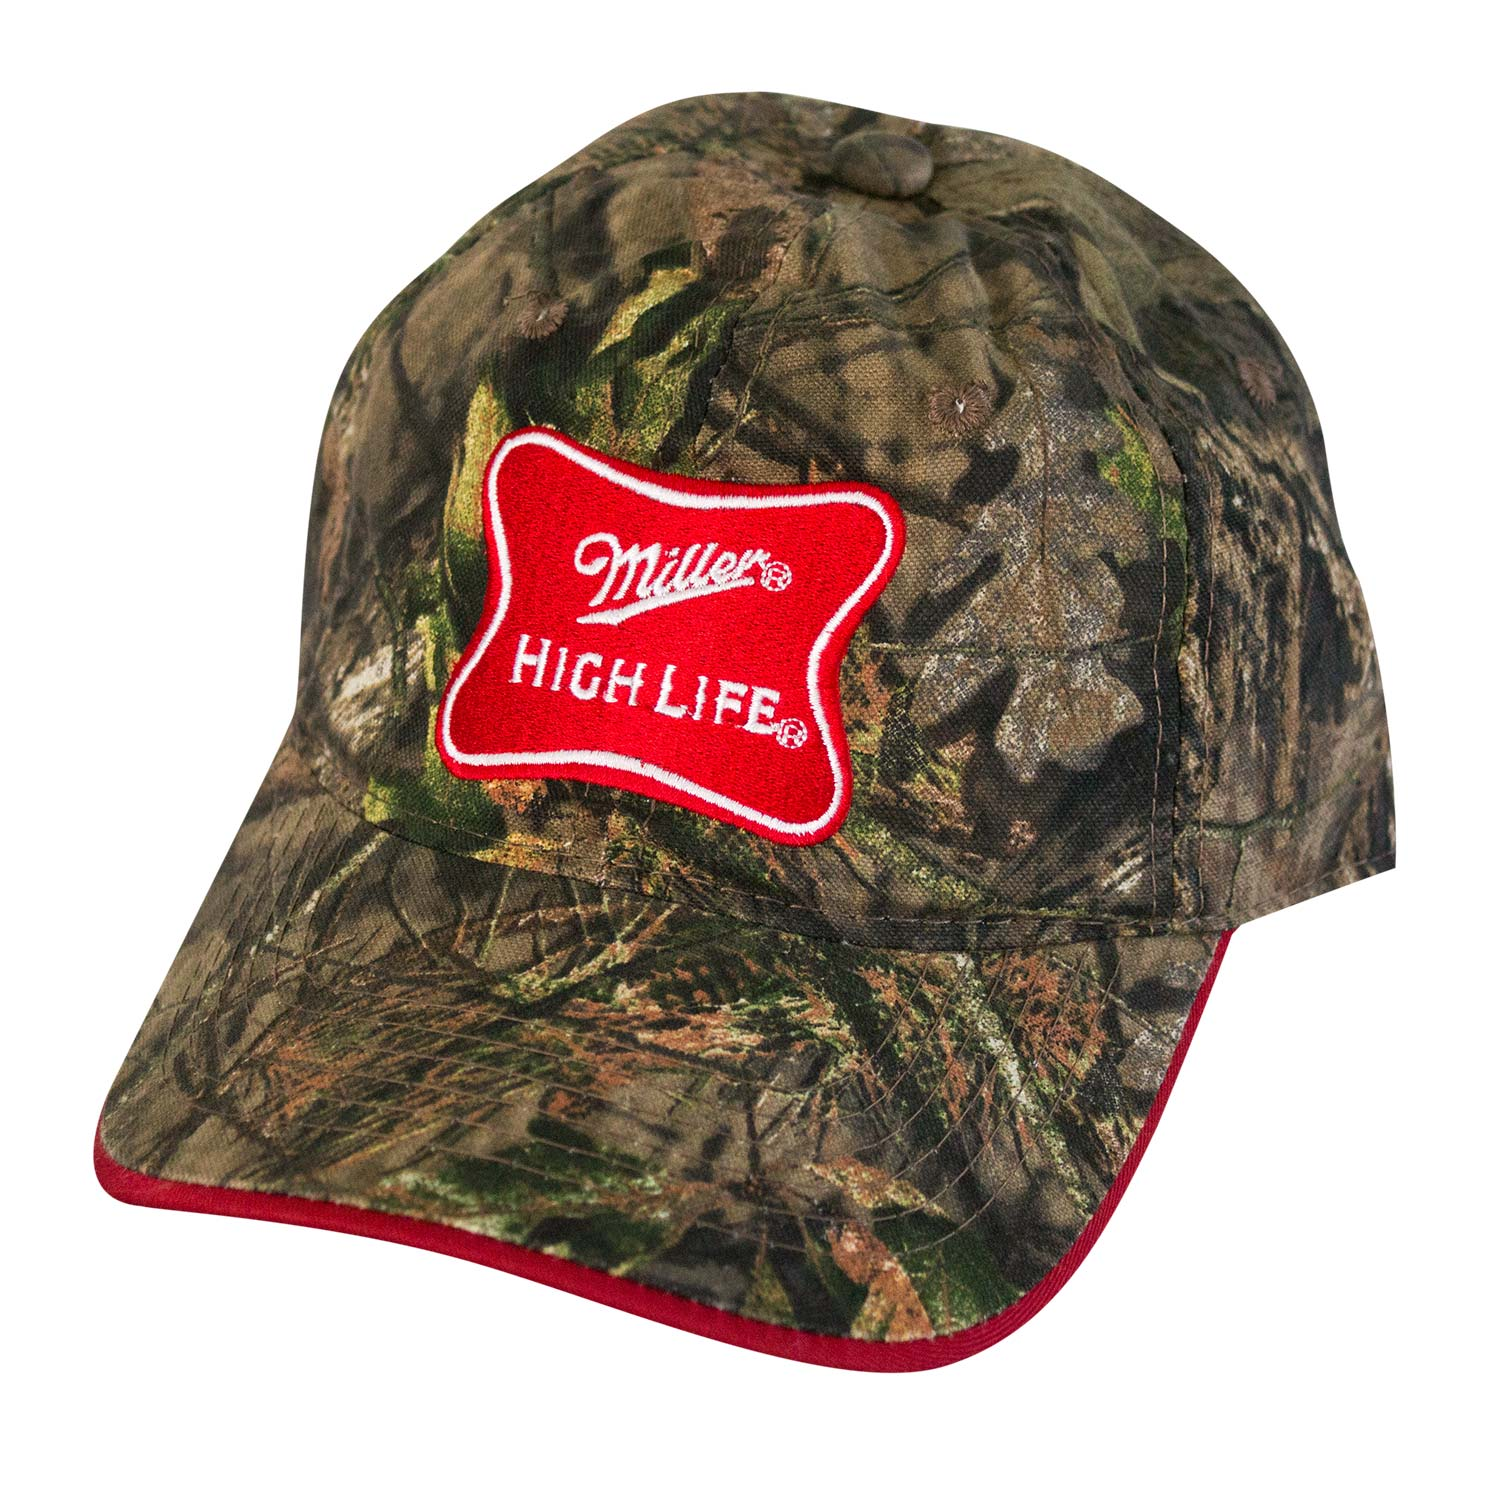 Mossy oak outdoor cap mens miller high life camo cap mossy oak country one  size jpg d8d396174b9b